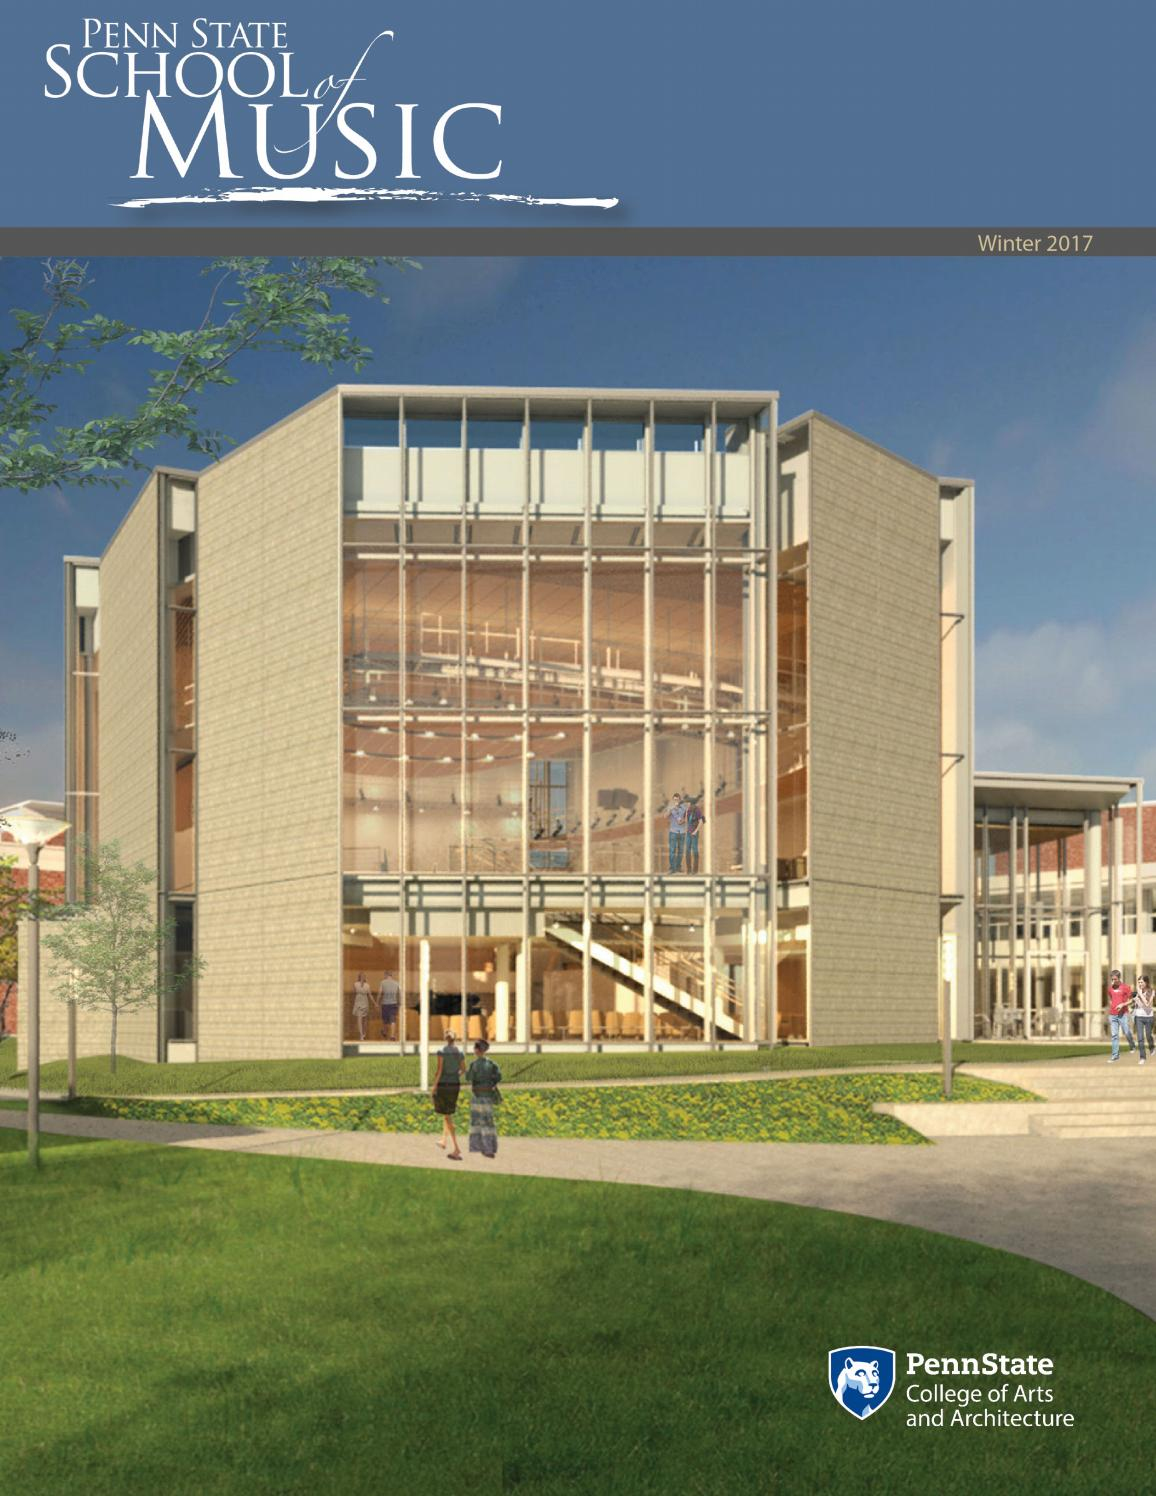 penn state school of music alumni news winter 2017 by russell penn state school of music alumni news winter 2017 by russell bloom issuu